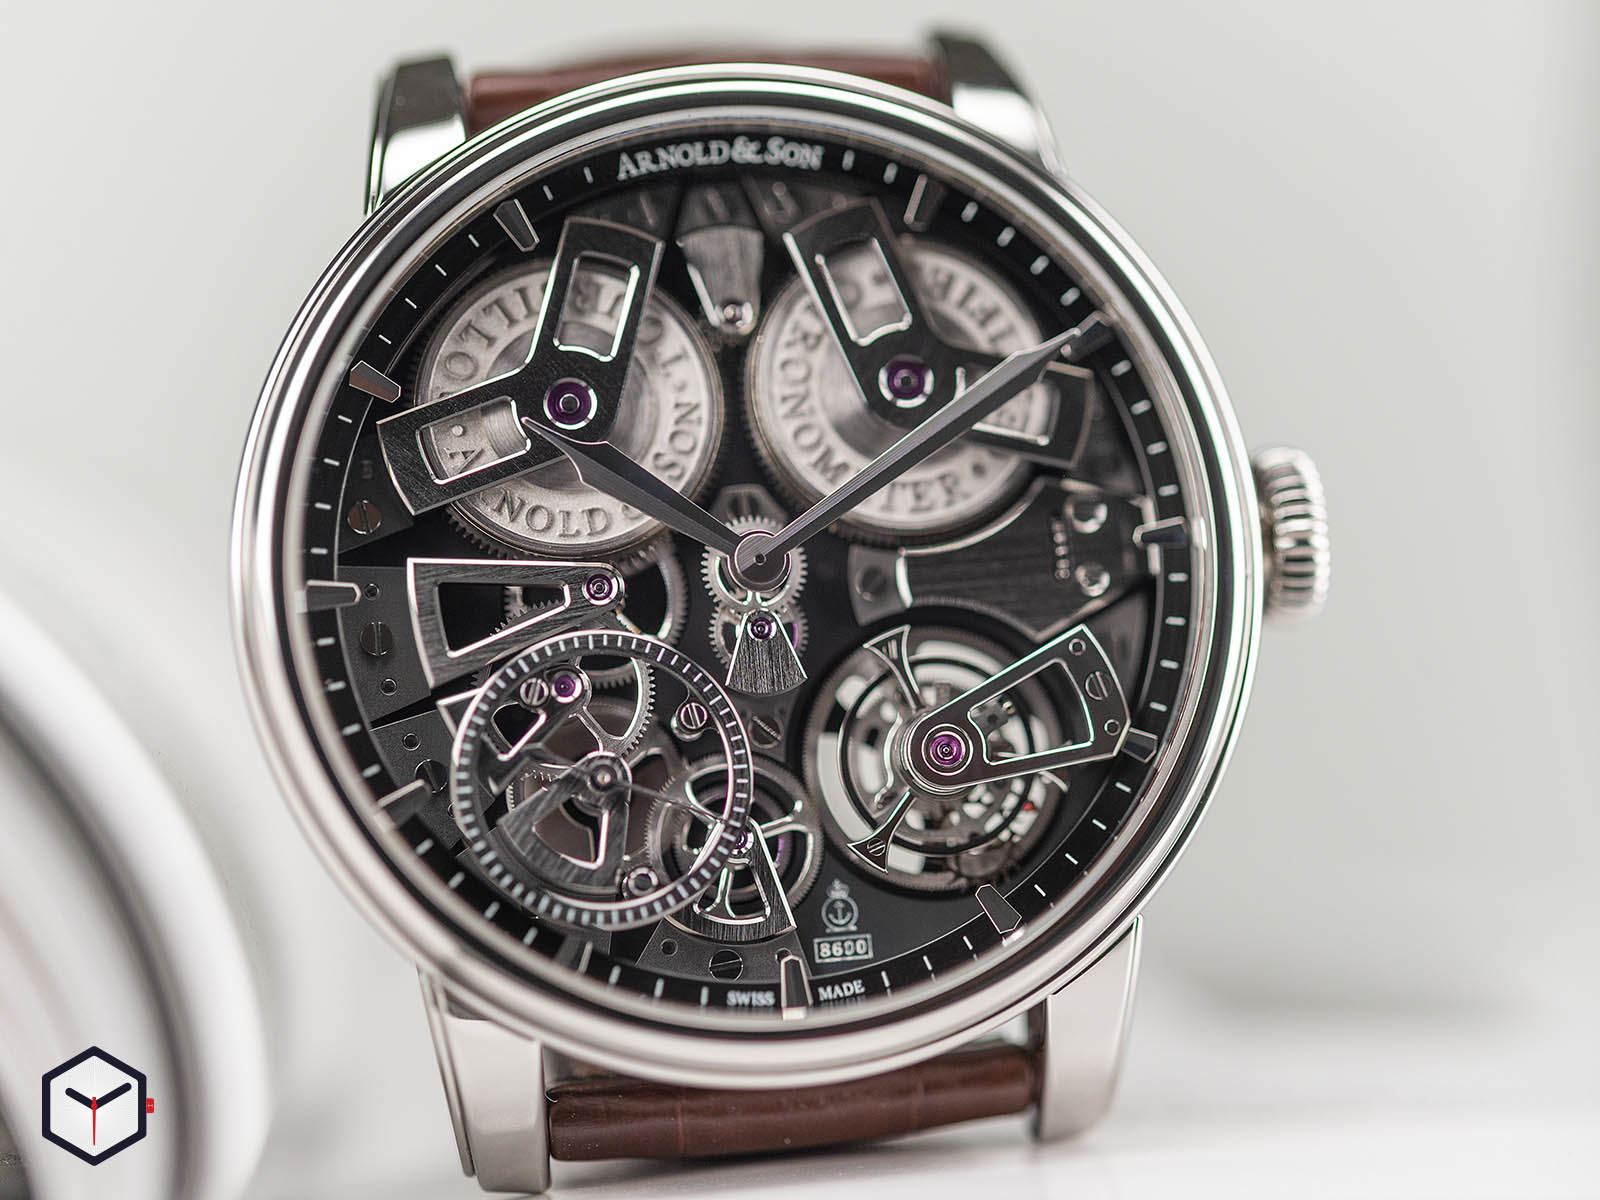 1etas-b01a-c113s-arnold-son-tourbillon-chronometer-no-36-tribute-edition-steel-4.jpg